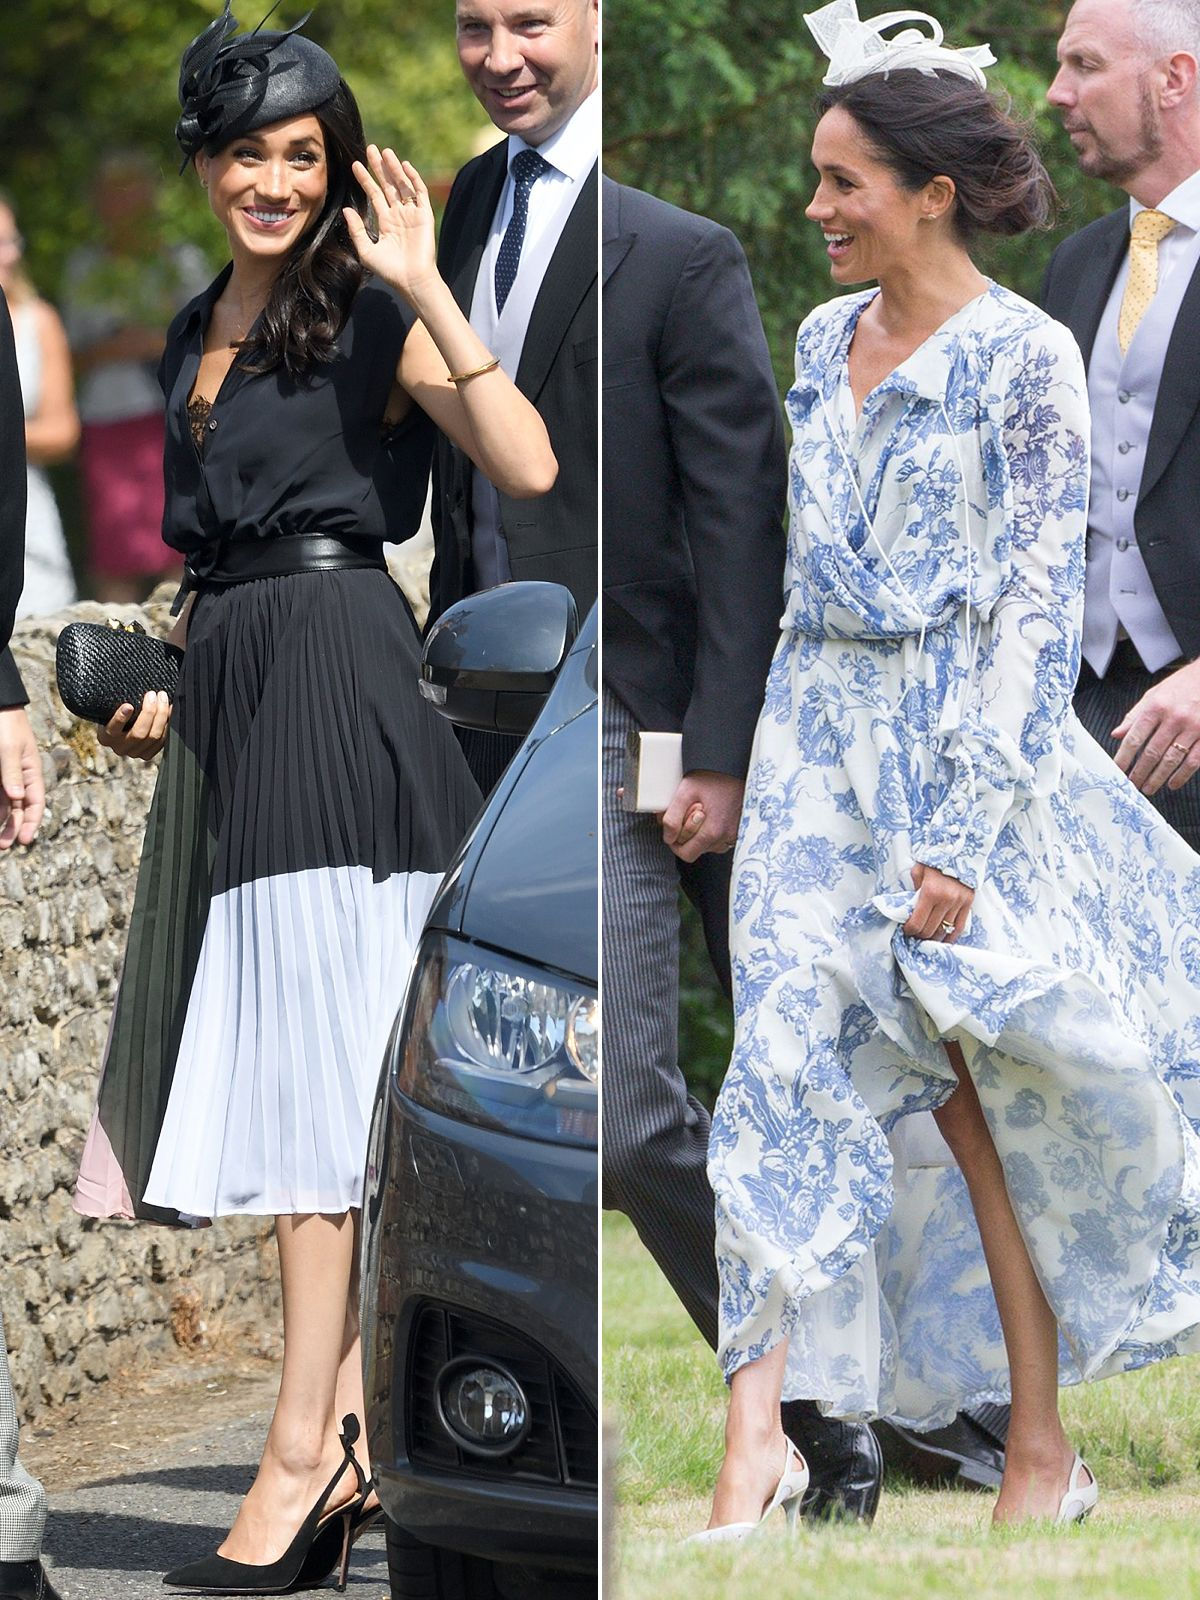 See Meghan Markle S Two Very Different Wedding Guest Looks Royal Wedding Guests Outfits Royal Wedding Outfits Wedding Guest Looks [ 1600 x 1200 Pixel ]